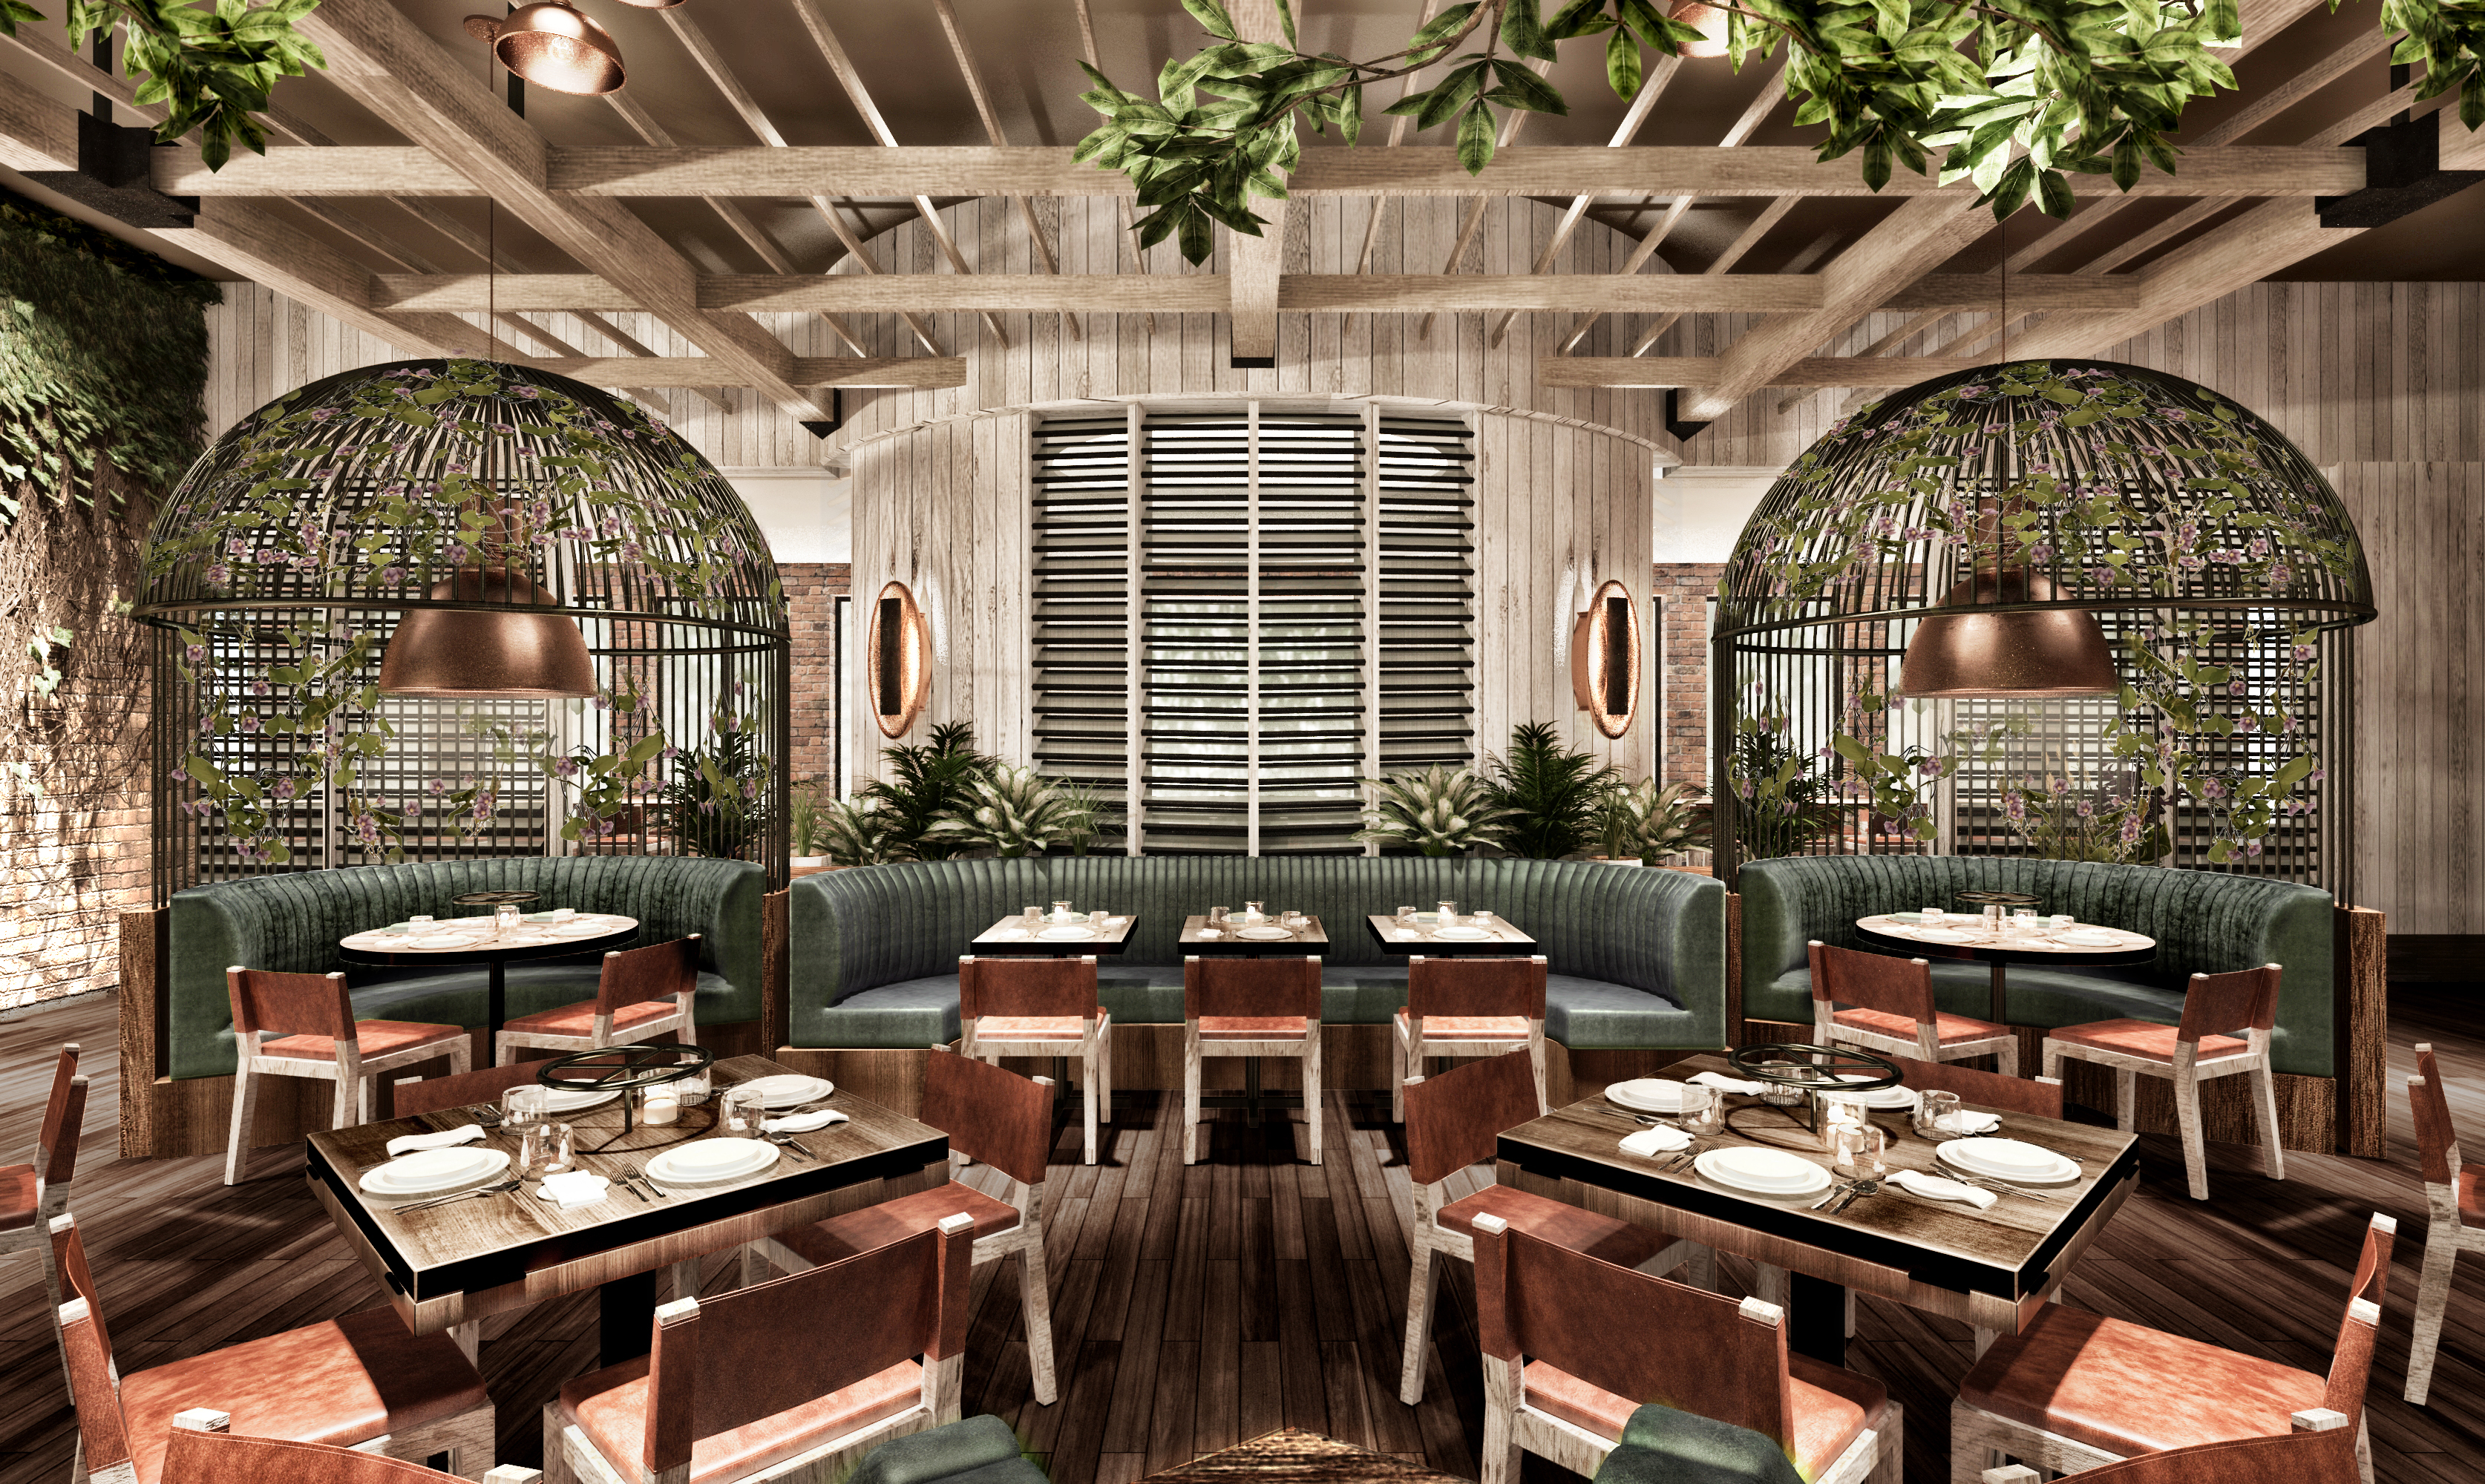 Rendering of the birdcages at Catch